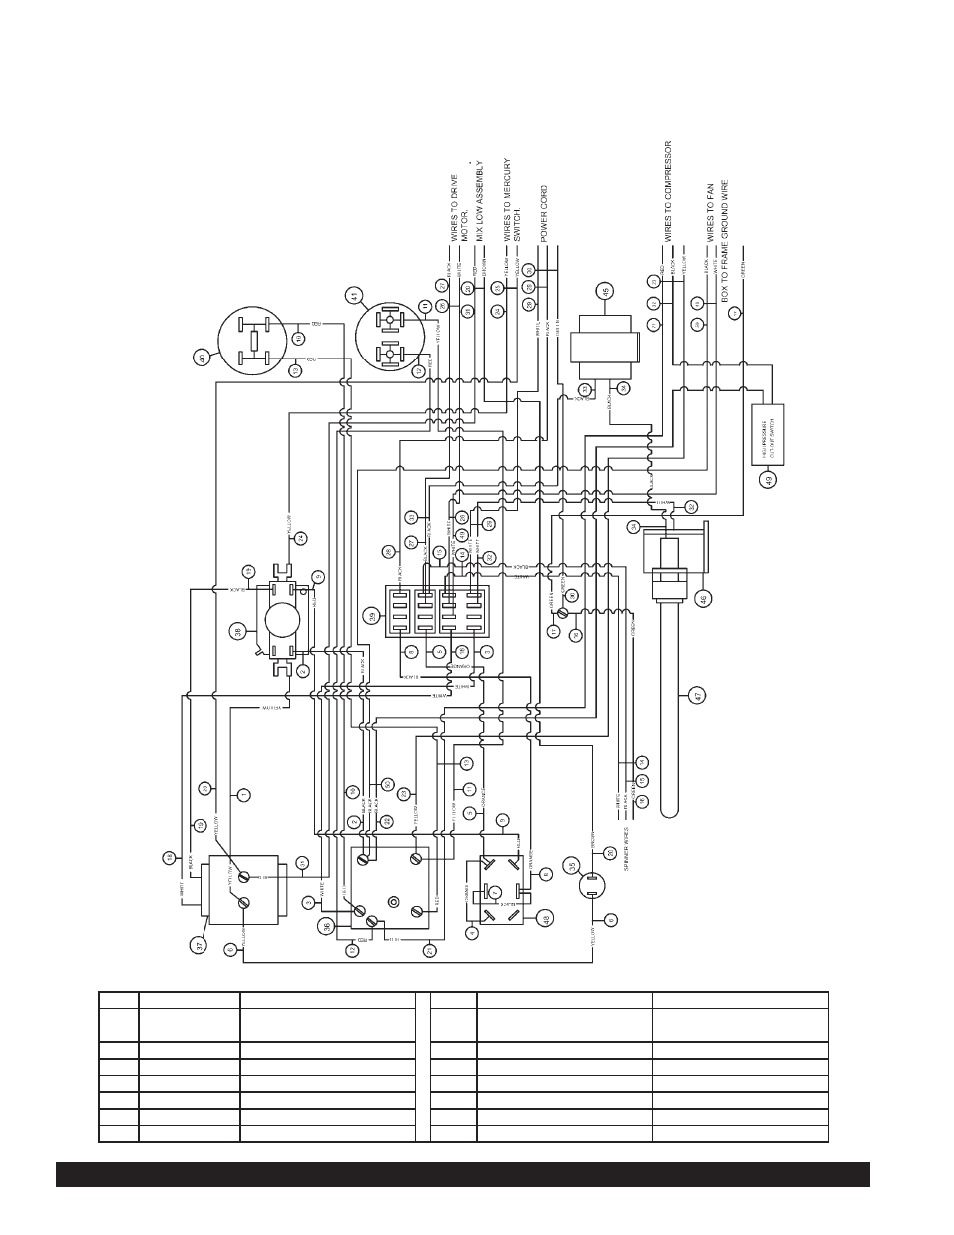 beverage air grindmaster 3311 page28 model 3311 wiring diagram water cooled model beverage air beverage air wiring diagram at gsmx.co